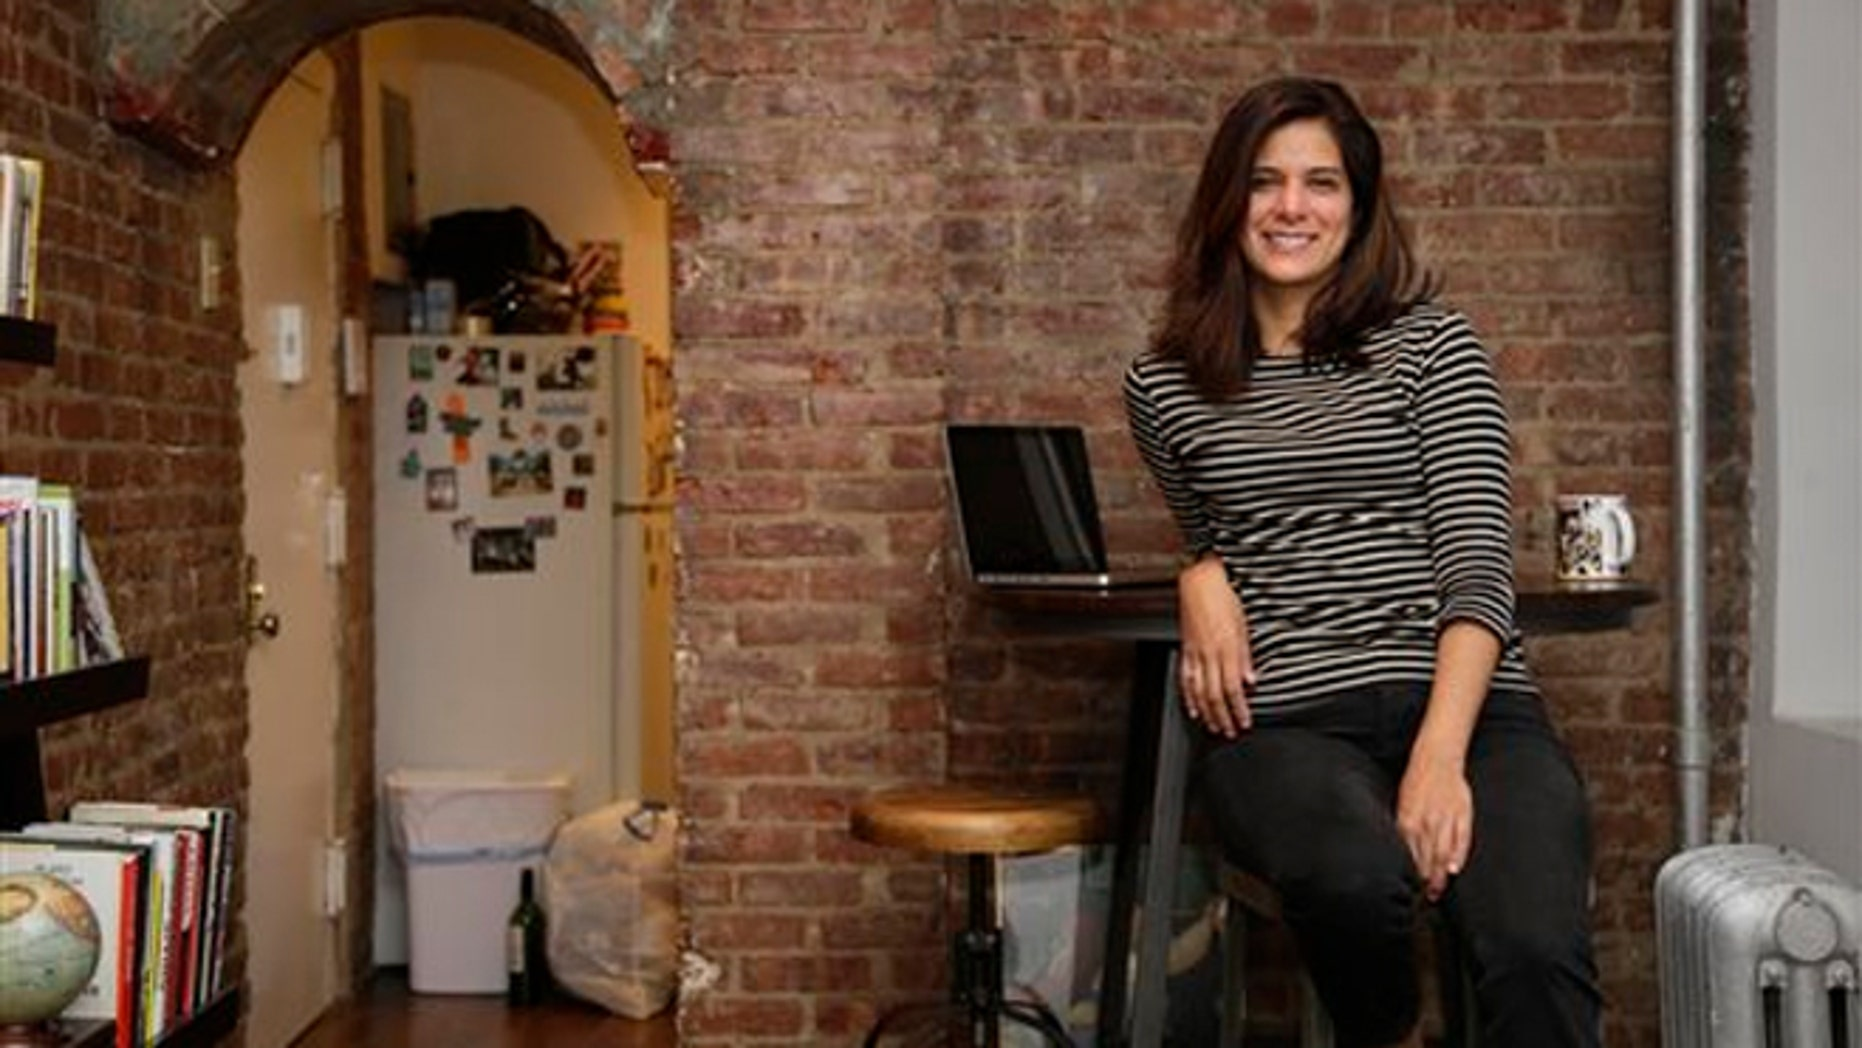 Oct. 10, 2013:  Mishelle Farer poses for picture in her apartment, where she rents a room on Airbnb, in New York.